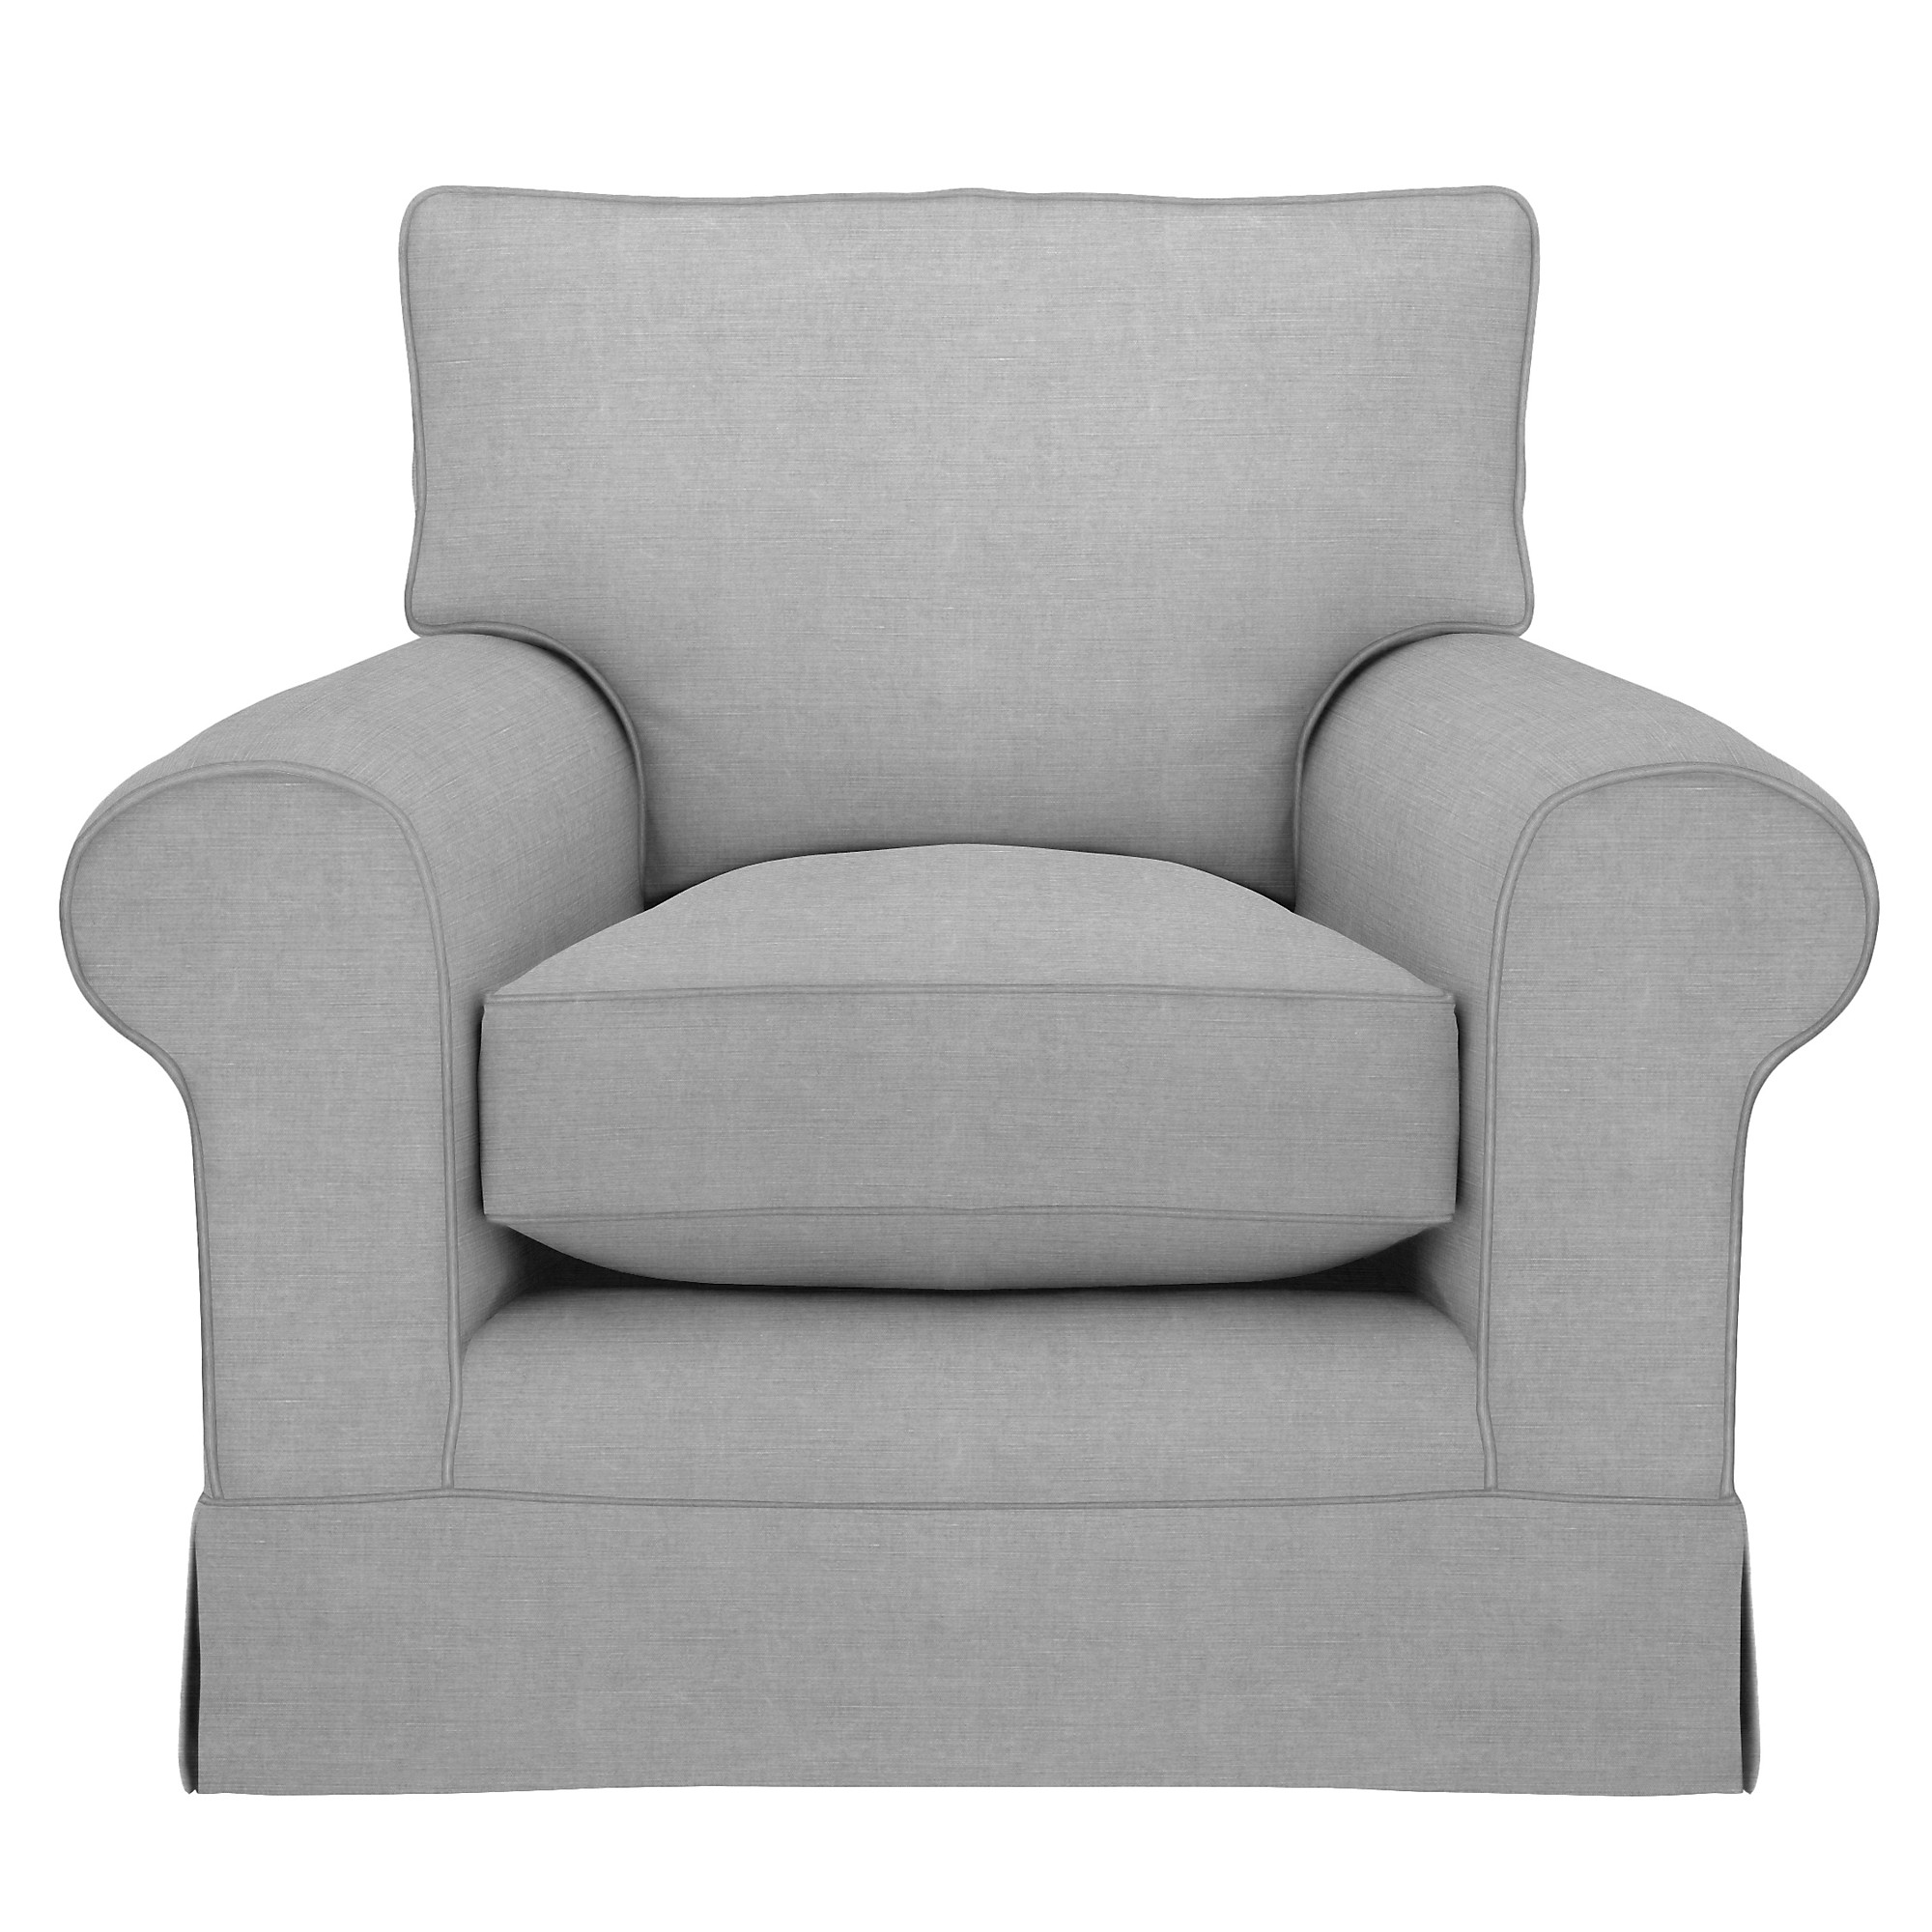 John lewis padstow fixed cover armchair review best buy for Armchair covers to buy